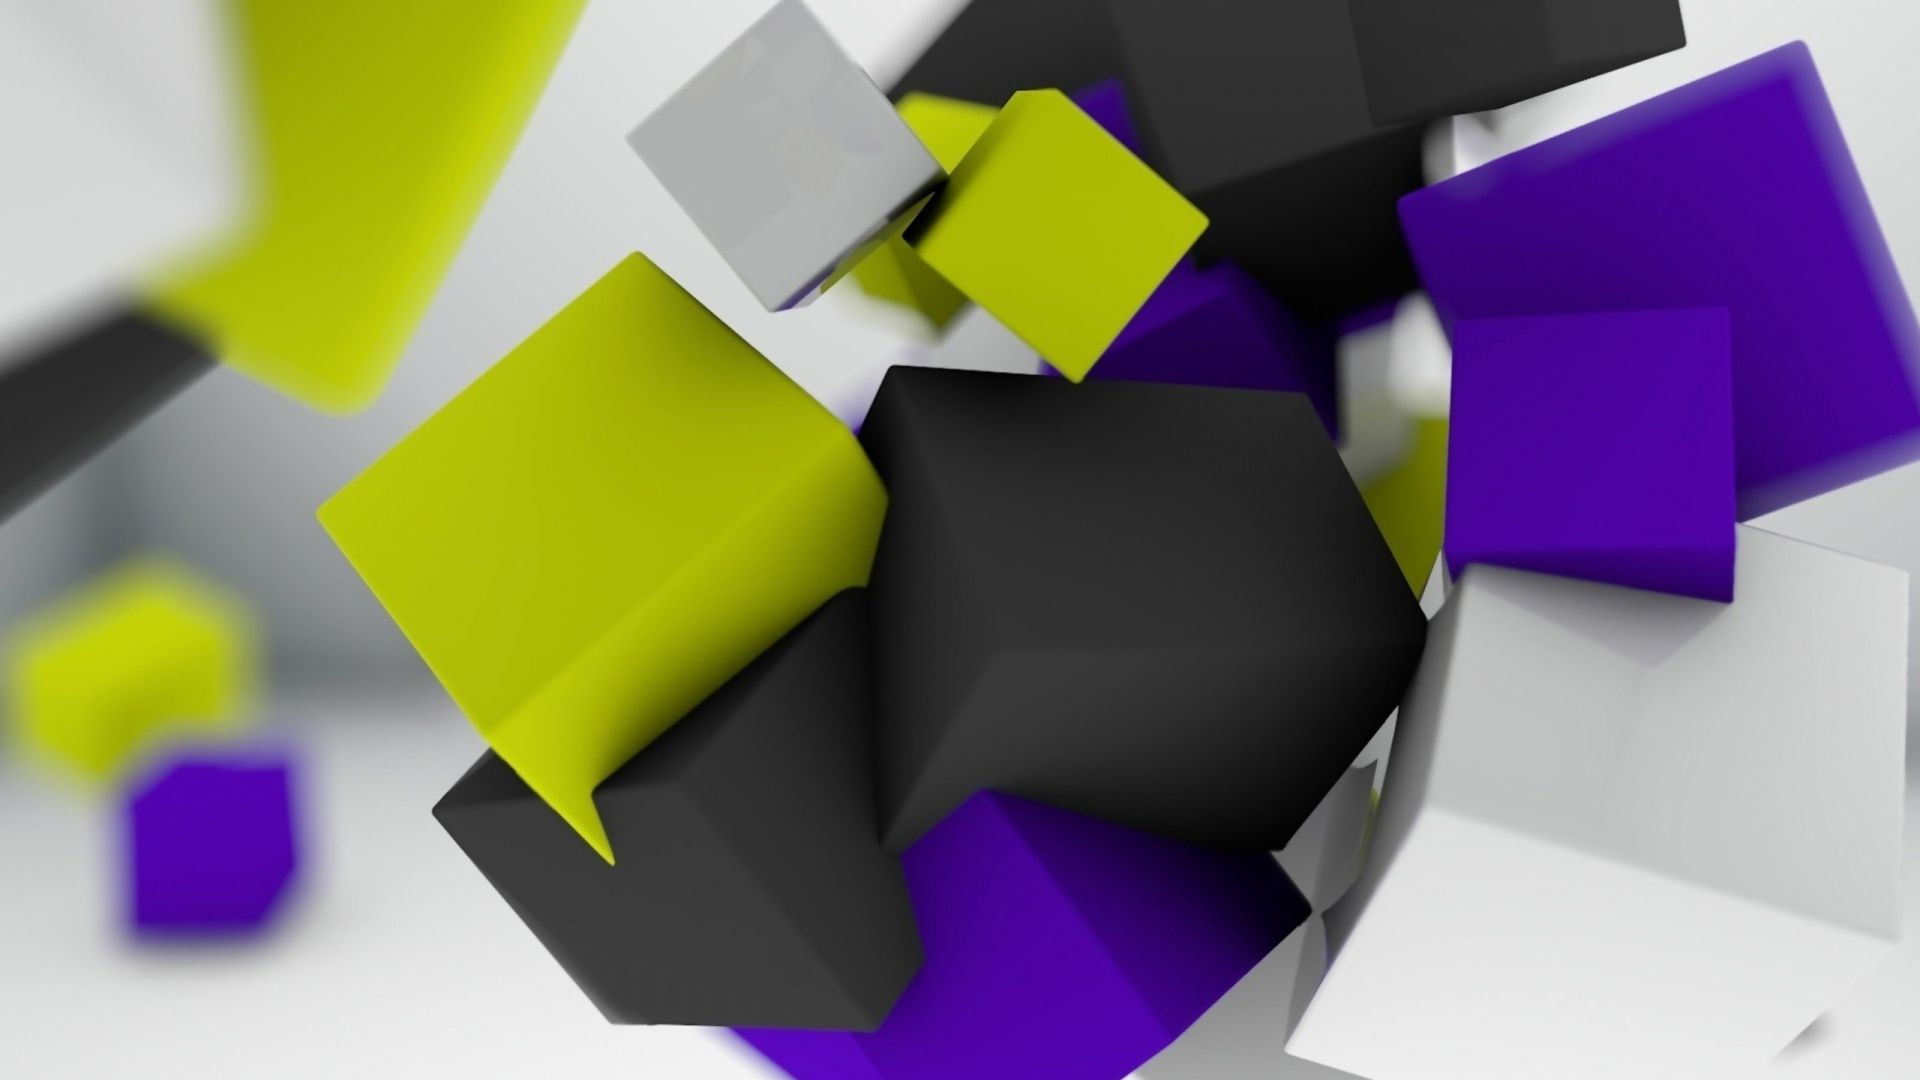 3d abstract cubes background - photo #30